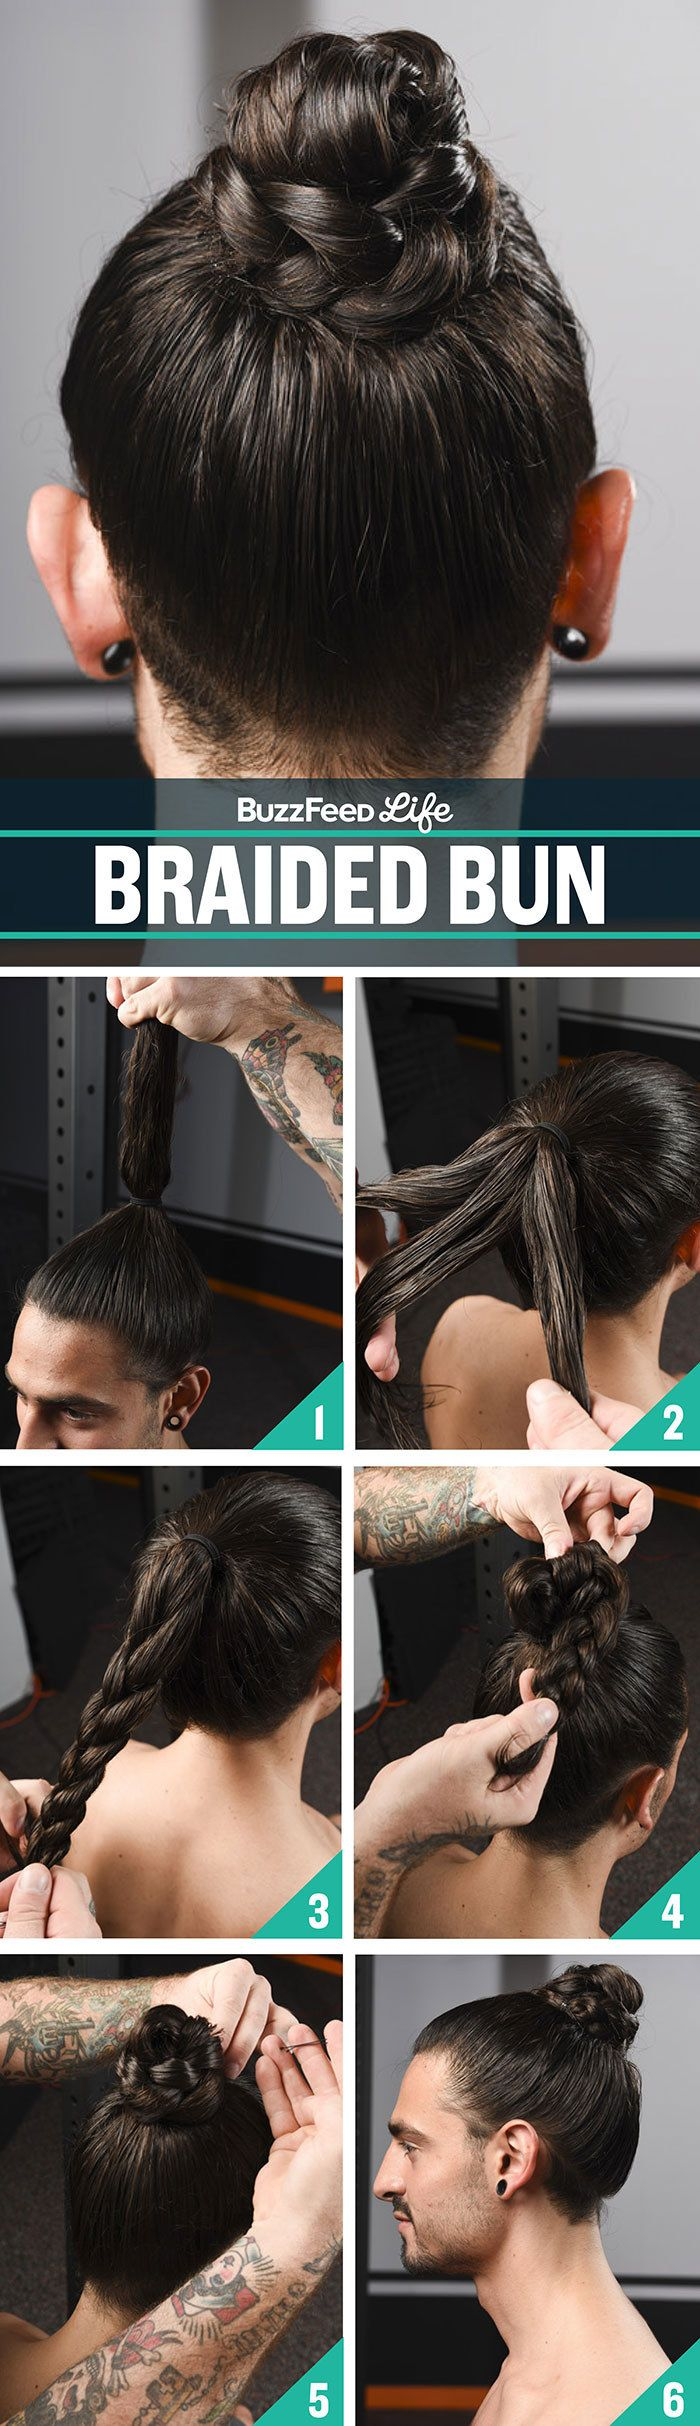 8 Ways To Style Your Hair For The Gym That Are Actually Awesome